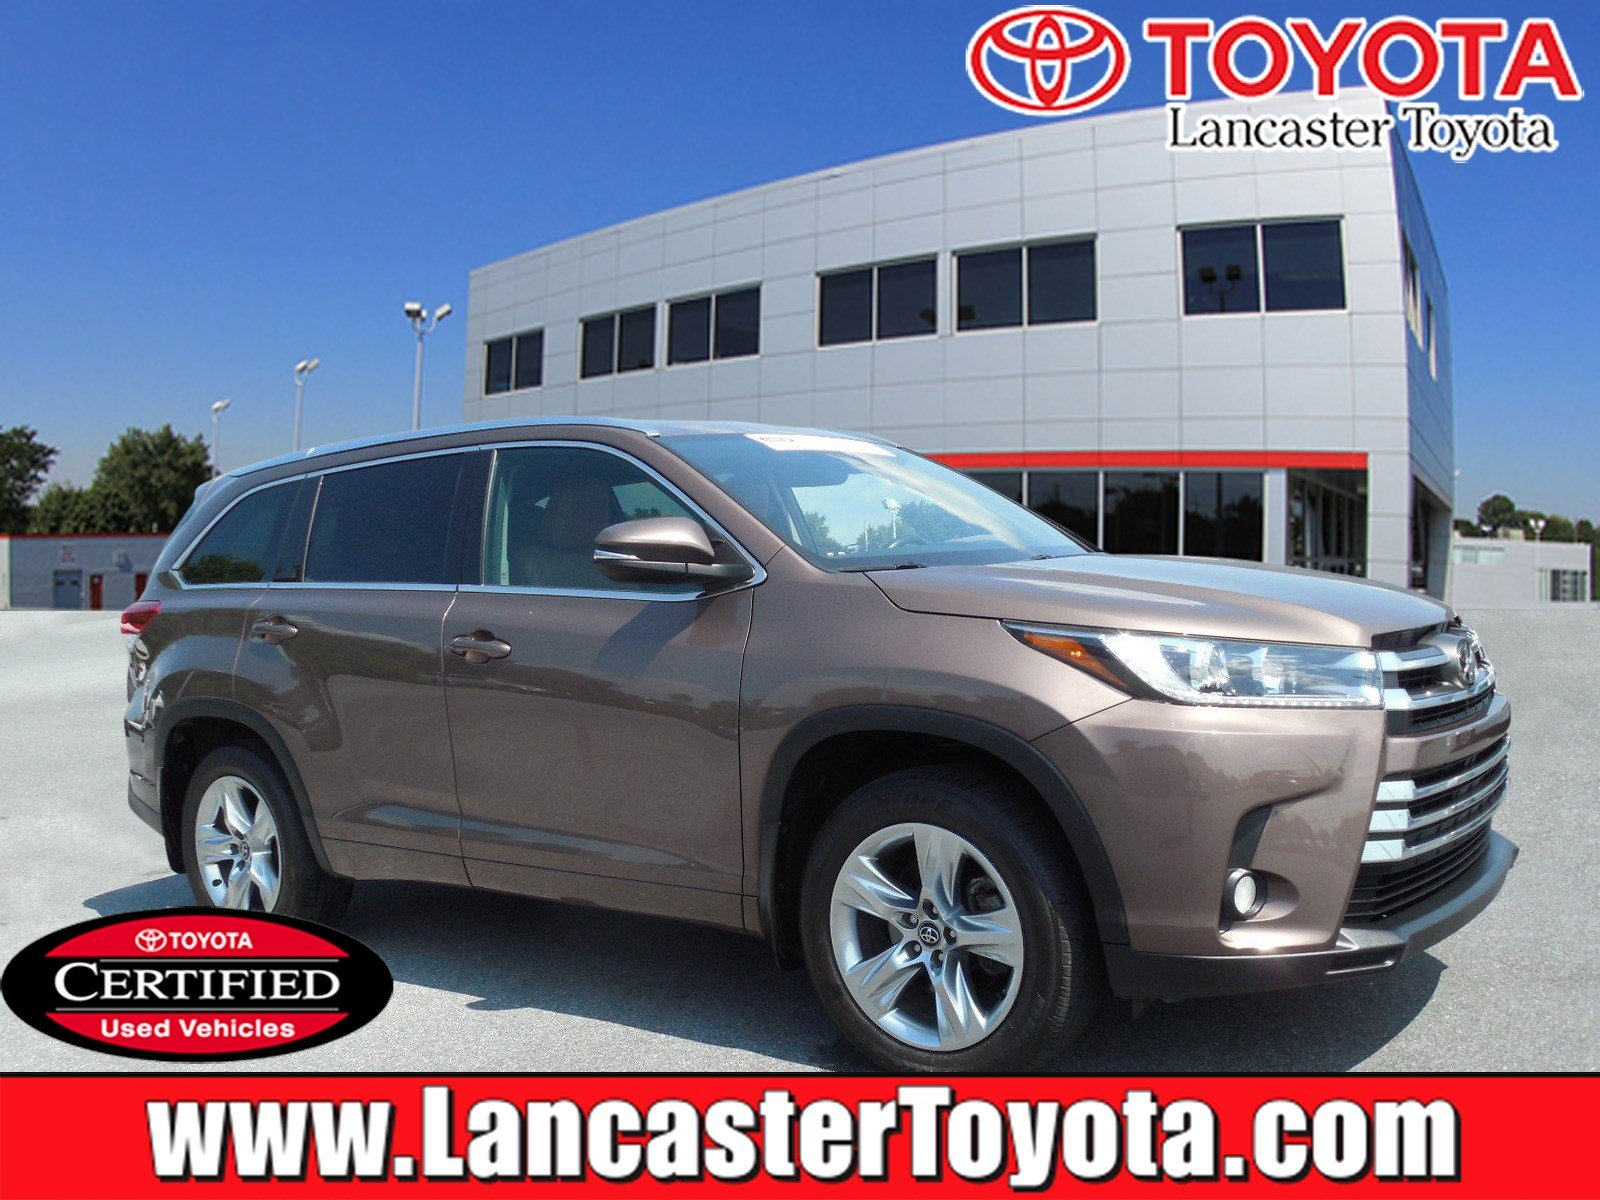 Toyota Highlander Owners Manual: Engine immobilizersystem